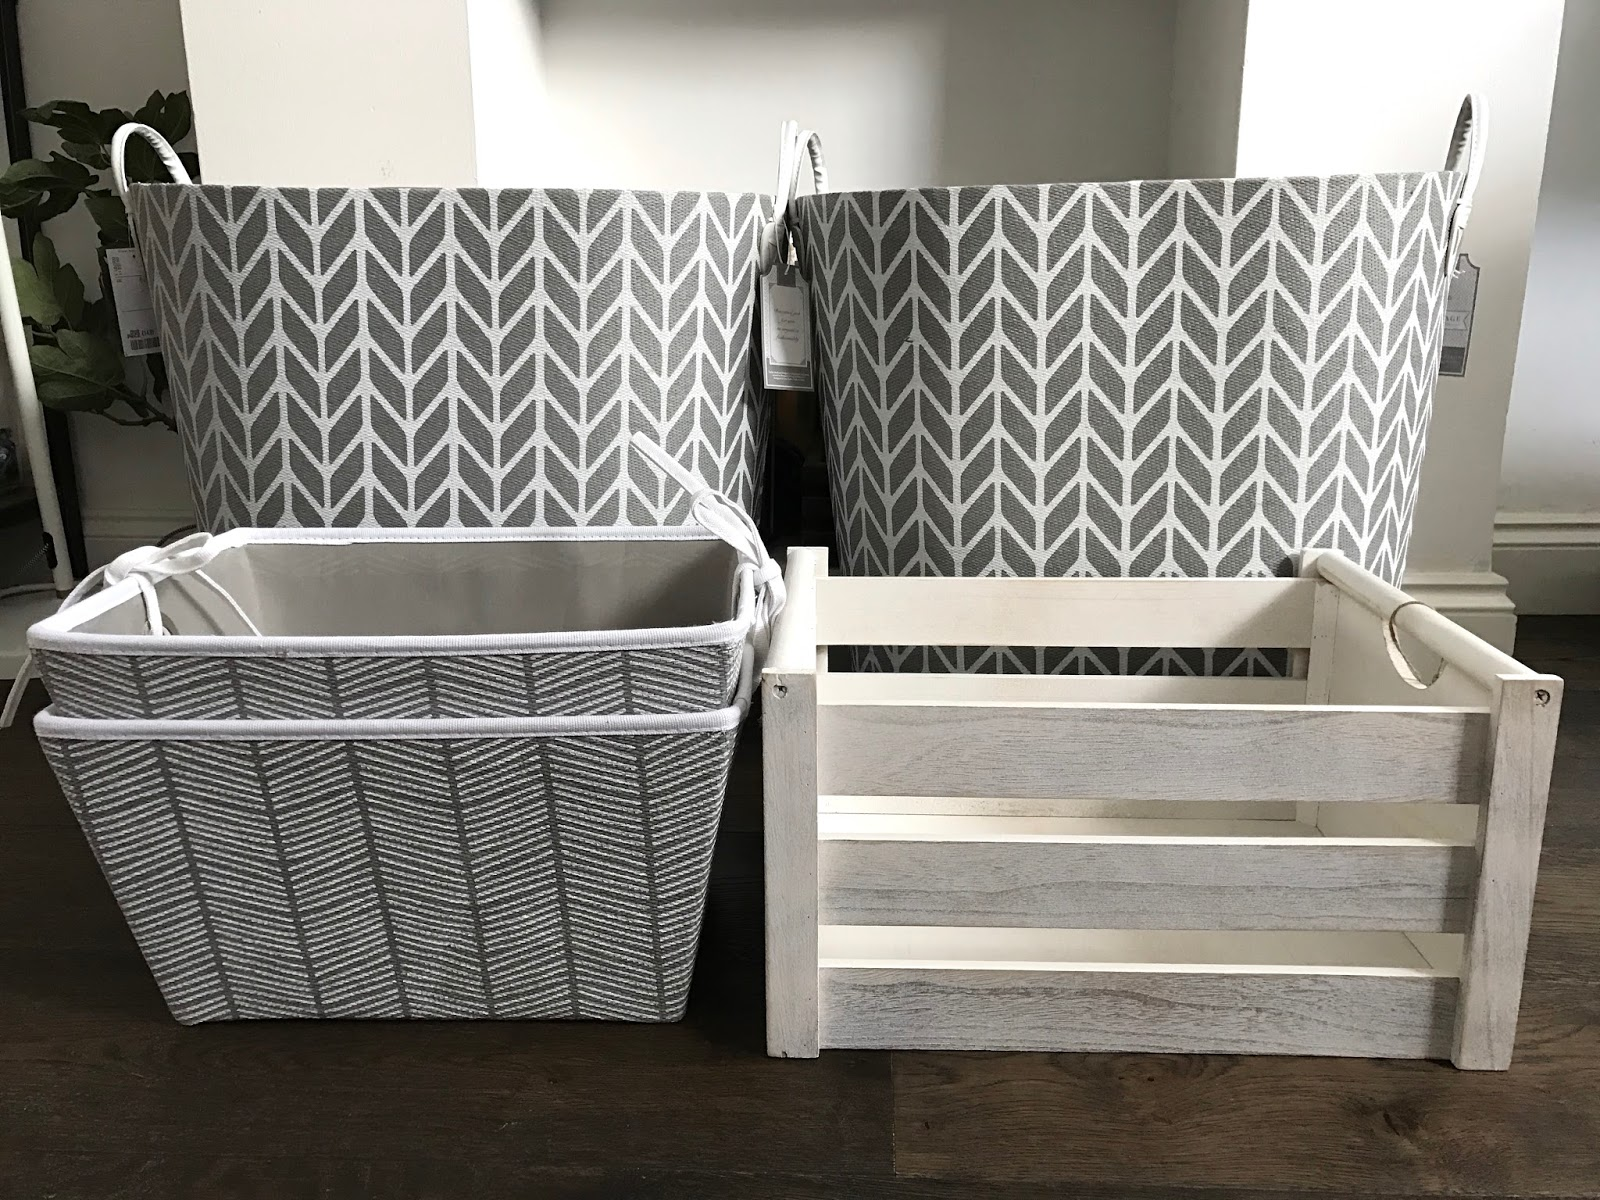 Homeware haul update from tk maxxhomesense lucy loves to eat baskets are a must to keep things tidy and out of the way the 2 large grey baskets are for isaacs toys in the living room tk maxx and homesense are reviewsmspy